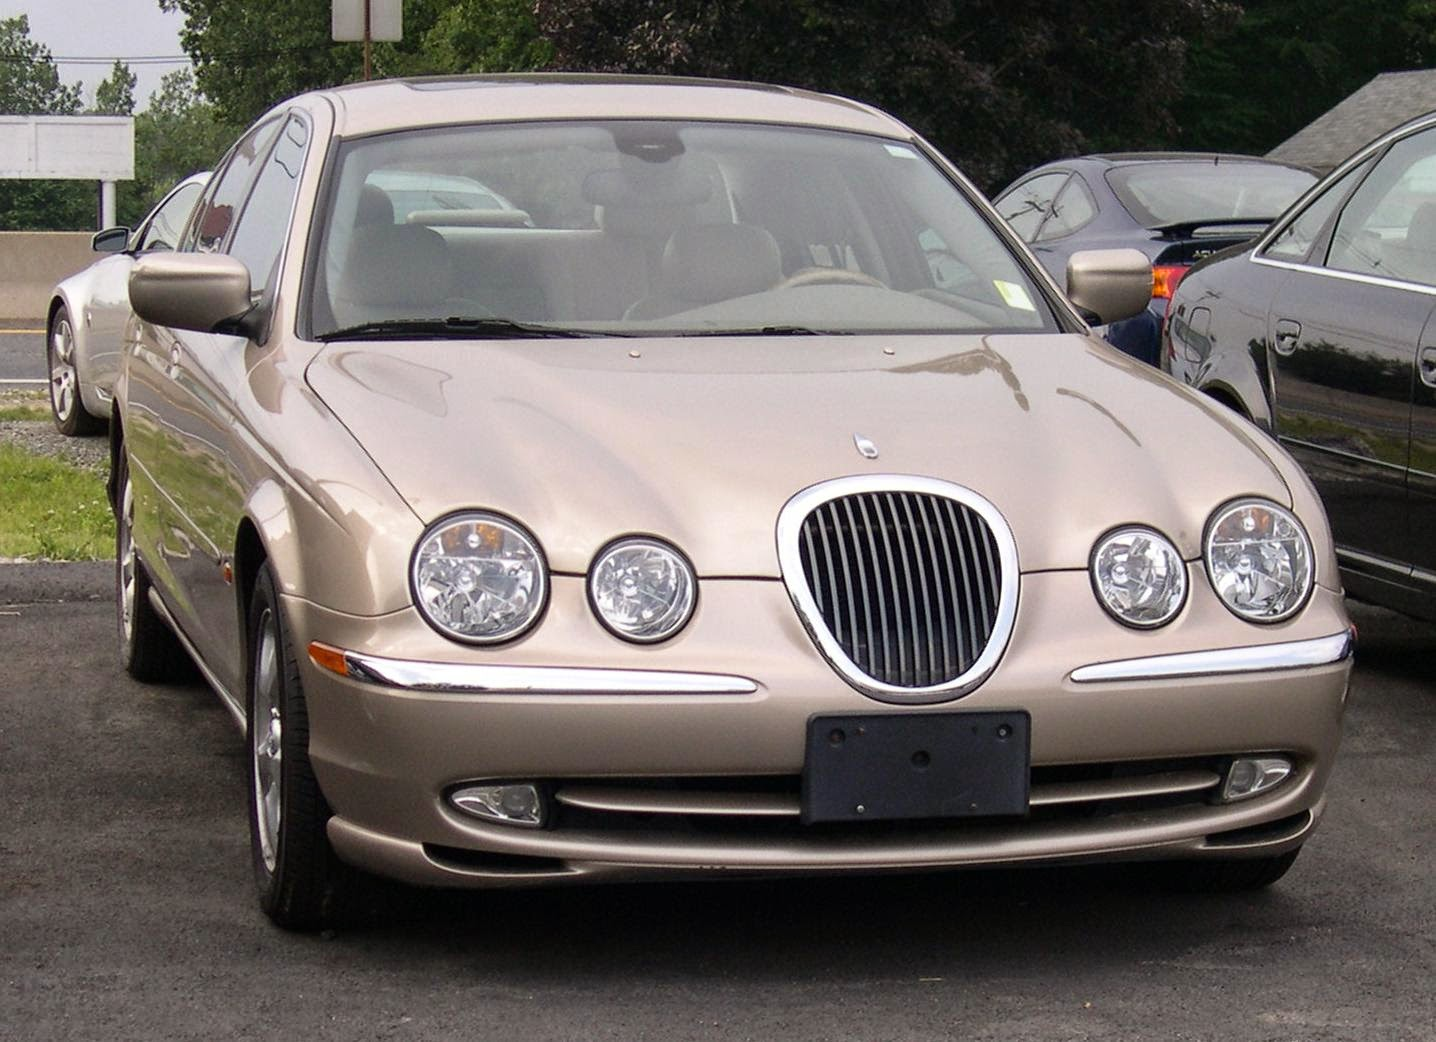 JAGUAR S-TYPE / X-200 2004 Owner's Manual | Driver's Handbook